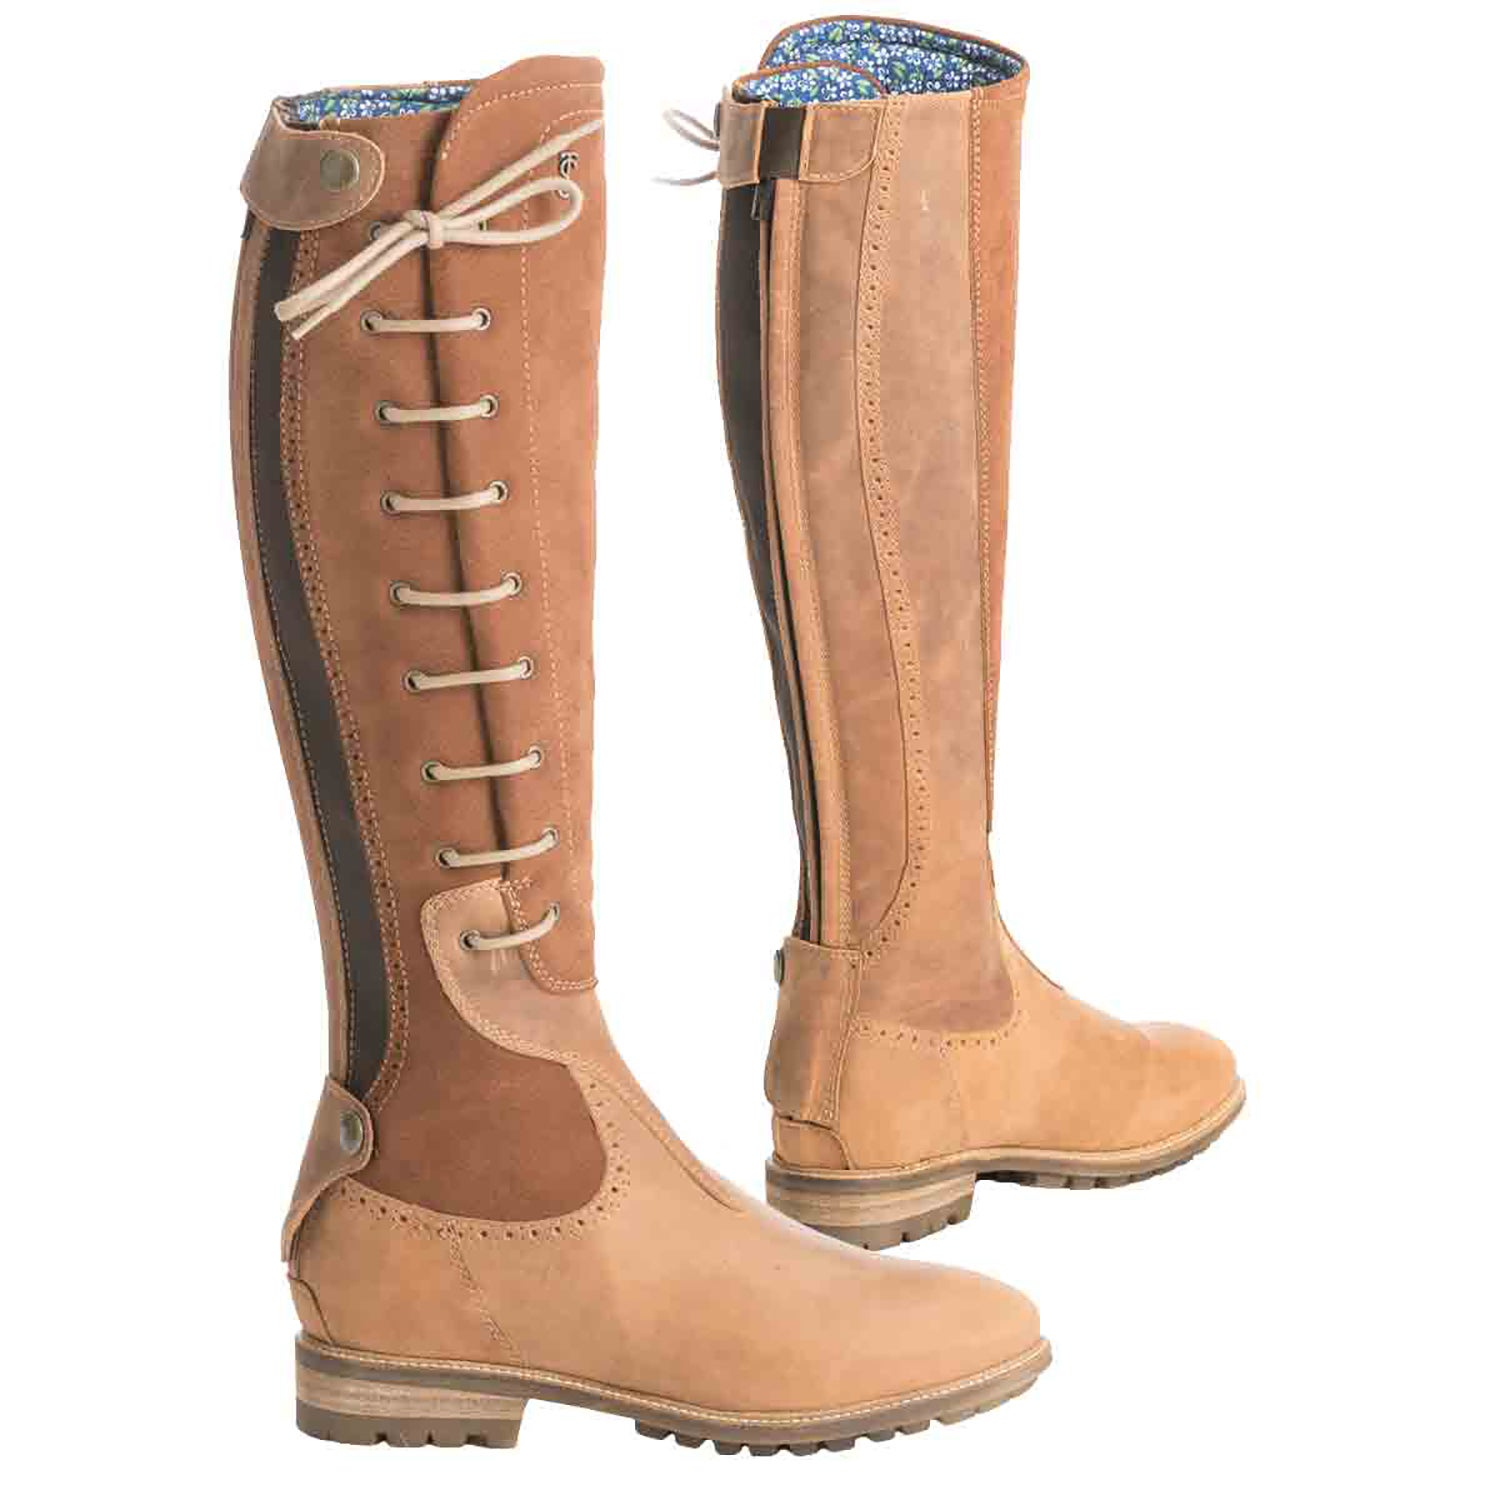 d02dcc4552b Tredstep Manor Wide Fit Ladies Country Boots from Rideaway